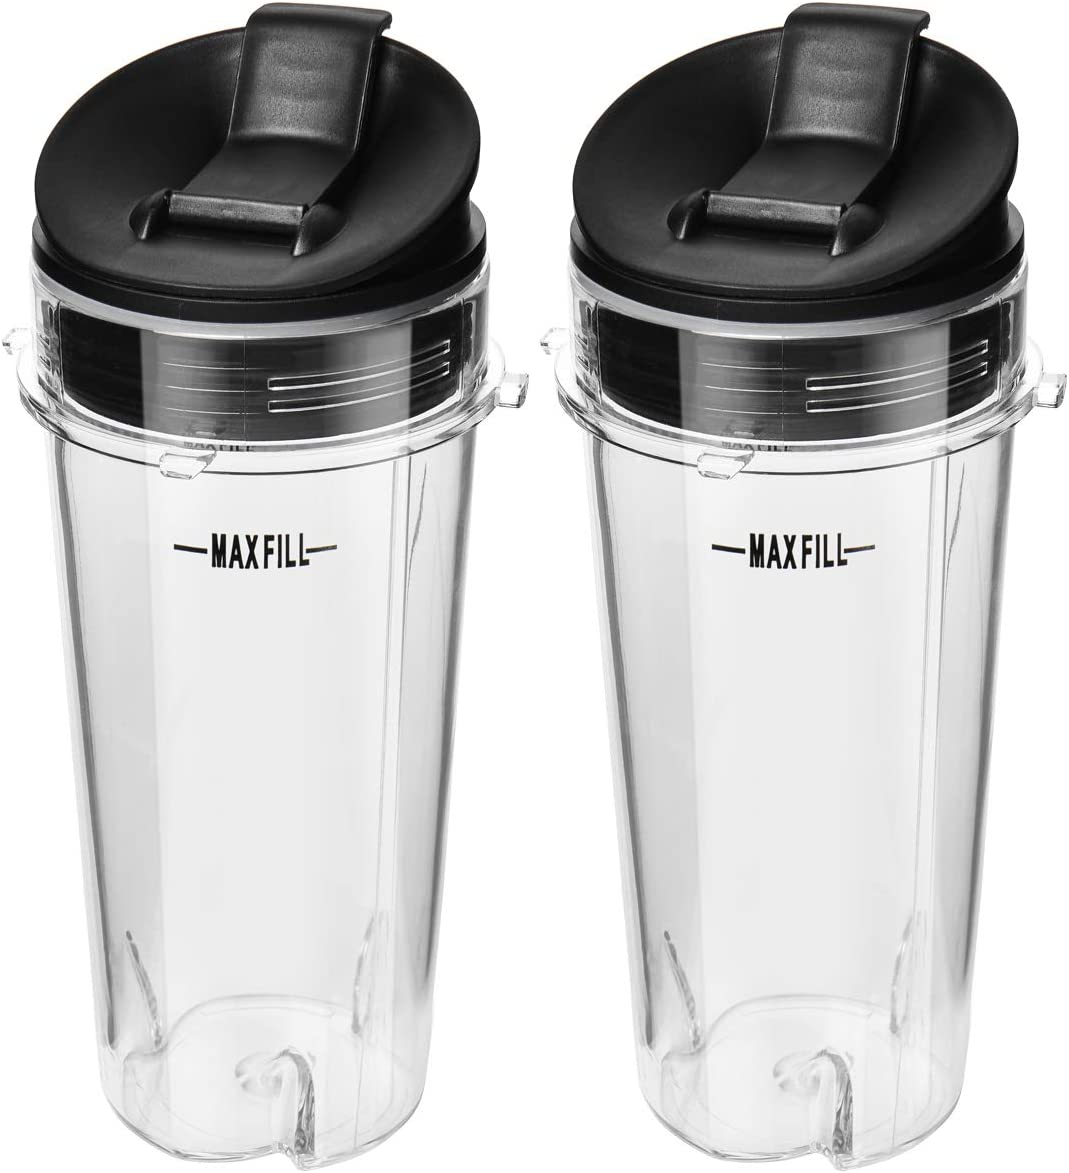 2 Pcs 16oz Cups for Ninja Blender with 4 Prongs,16 Ounce Single Serve Cups Replacement Parts Assembly with Flip Lid for Nutri Ninja BL660 BL740 BL770 BL771 BL773CO BL810 BL820 BL830